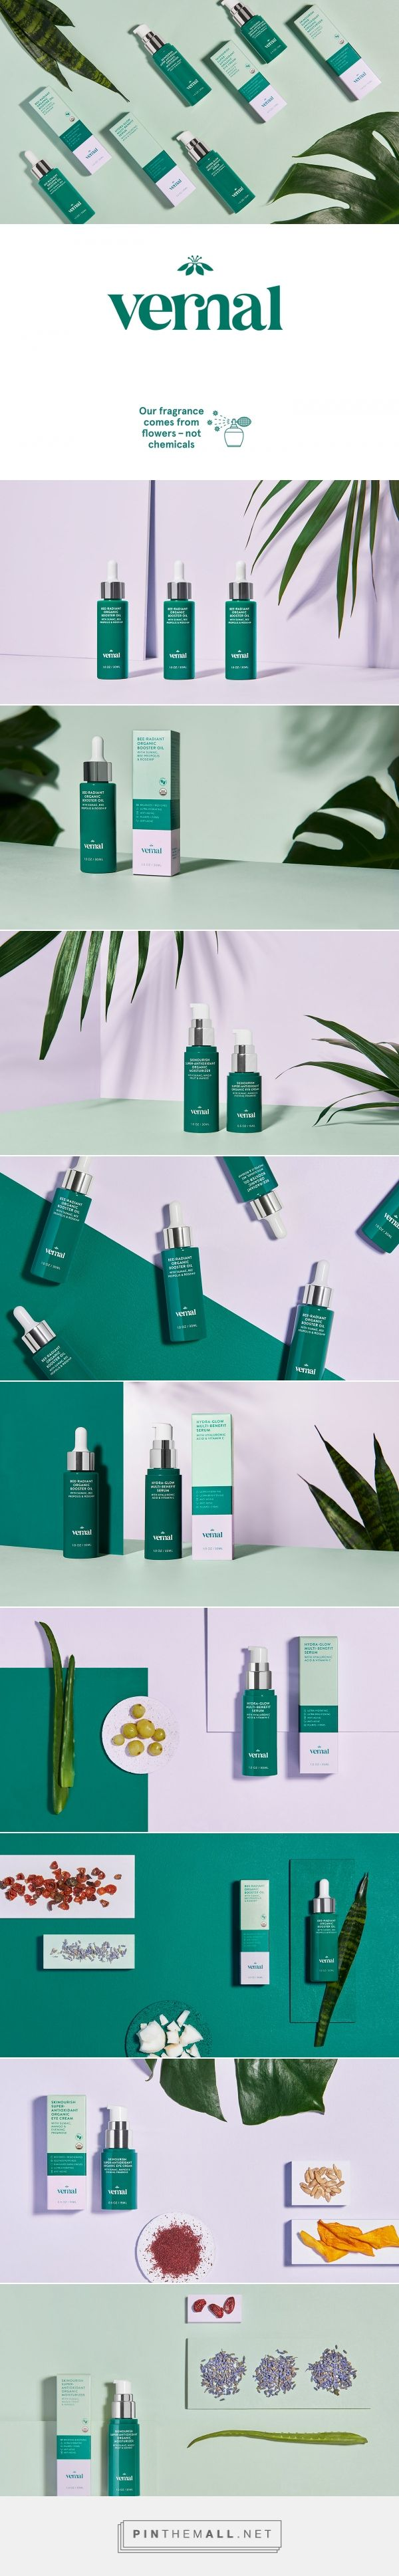 Vernal Beauty Anti-Aging Skincare Packaging by Saana Hellsten | Fivestar Branding Agency – Design and Branding Agency & Curated Inspiration Gallery